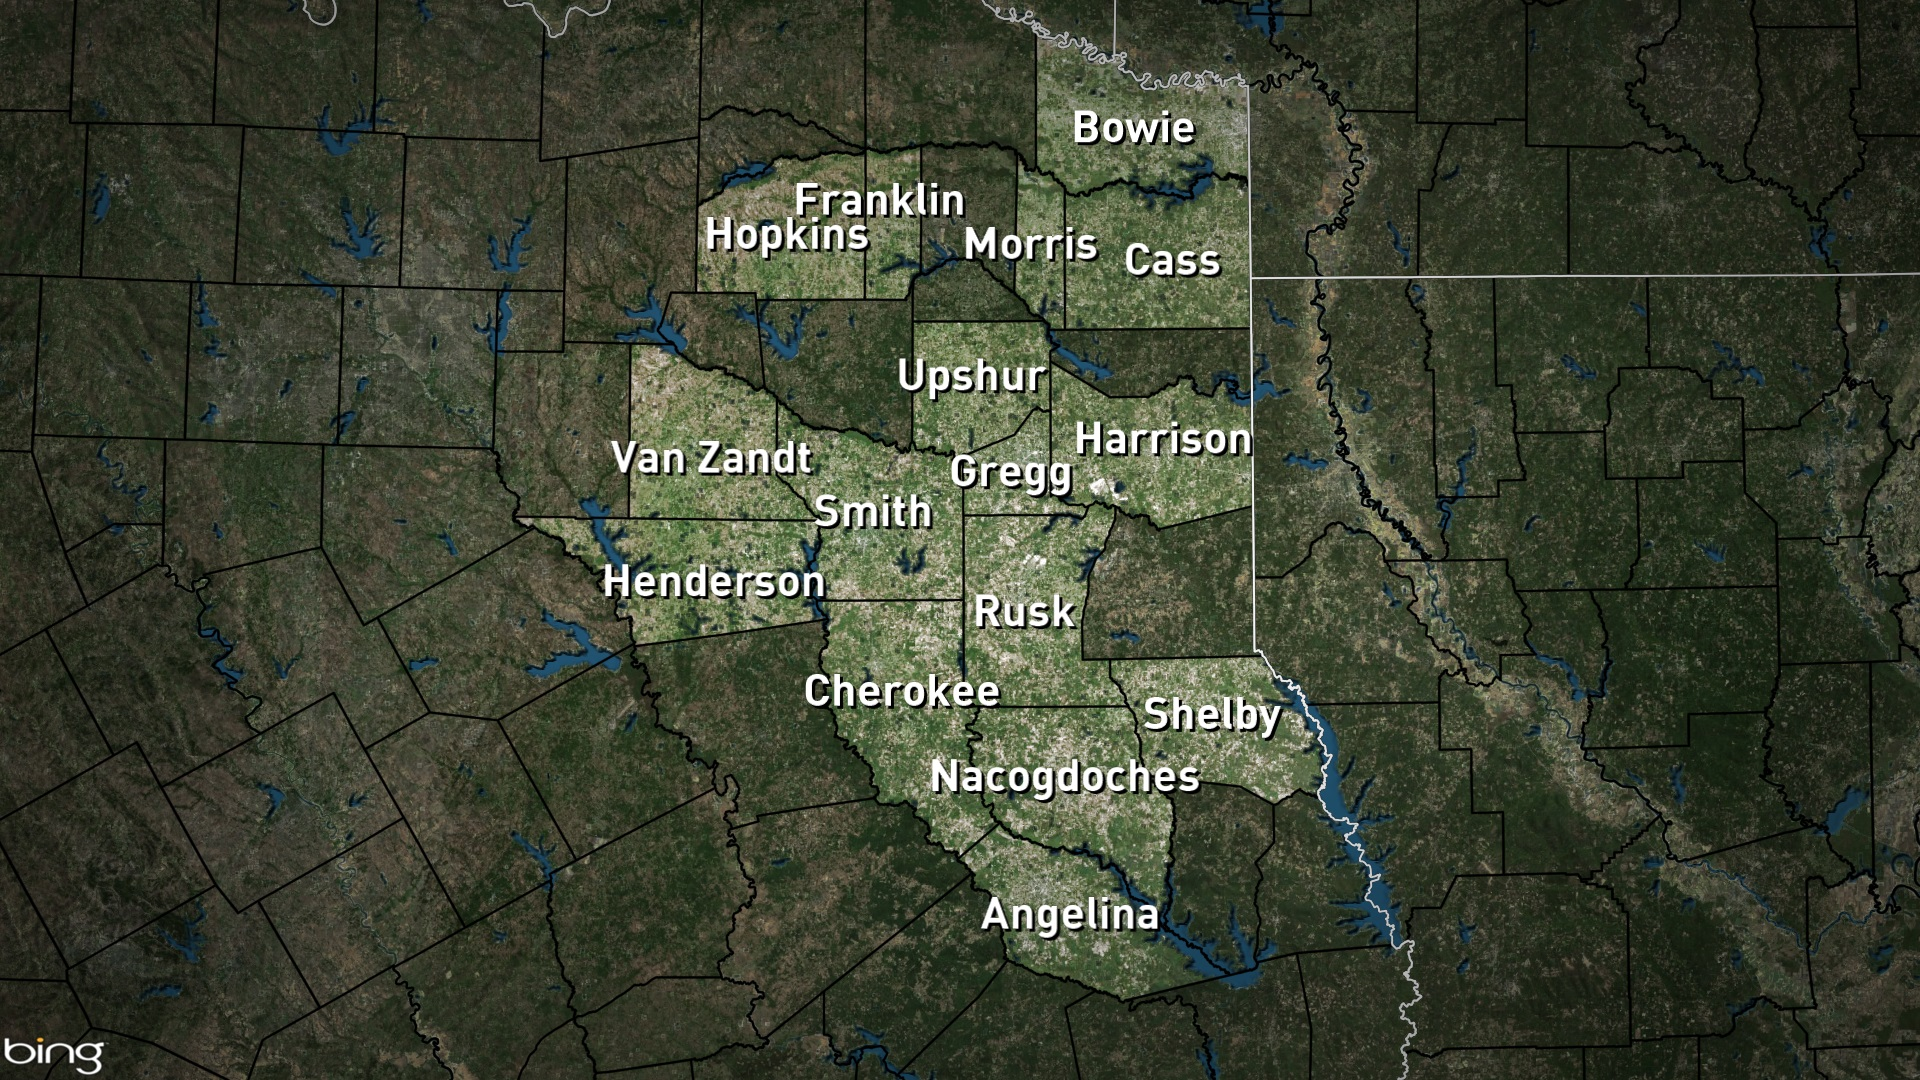 Two Travel Related Cases Of Covid 19 Reported In Harris: Cherokee County Reports 2nd Case Of COVID-19